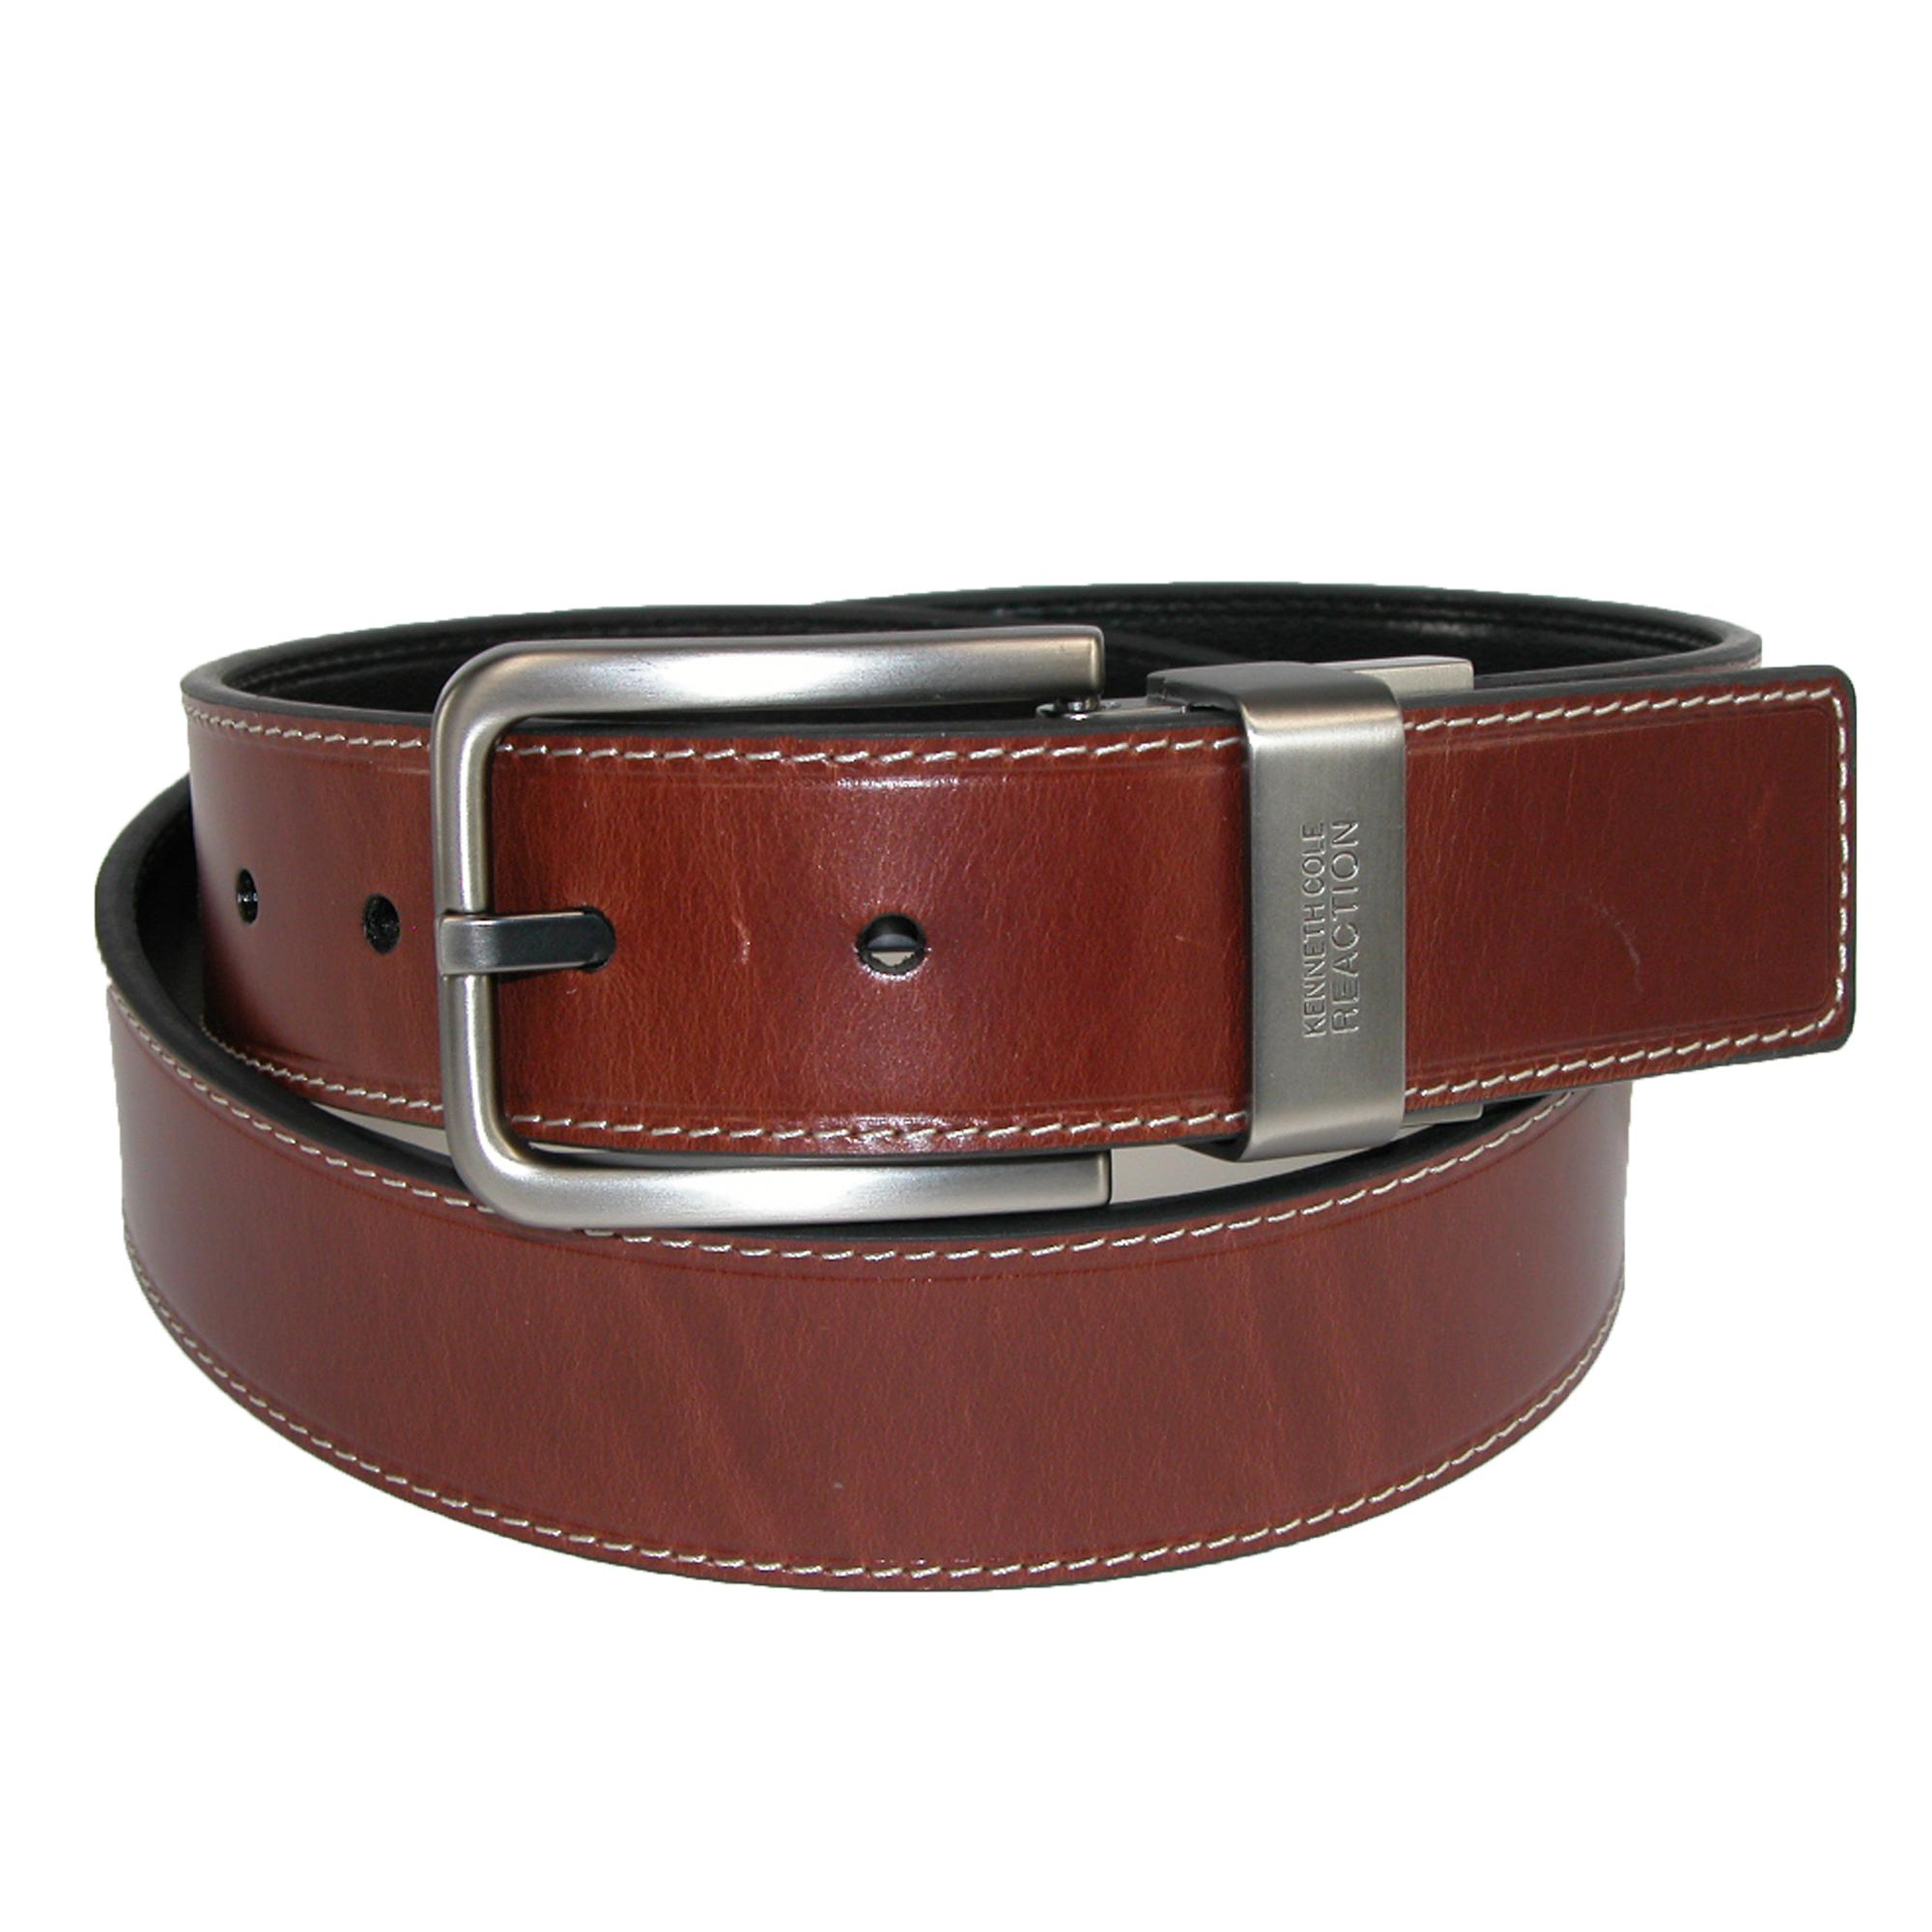 Kenneth_Cole_Reaction_Mens_Oil_Tanned_Leather_Reversible_Belt_